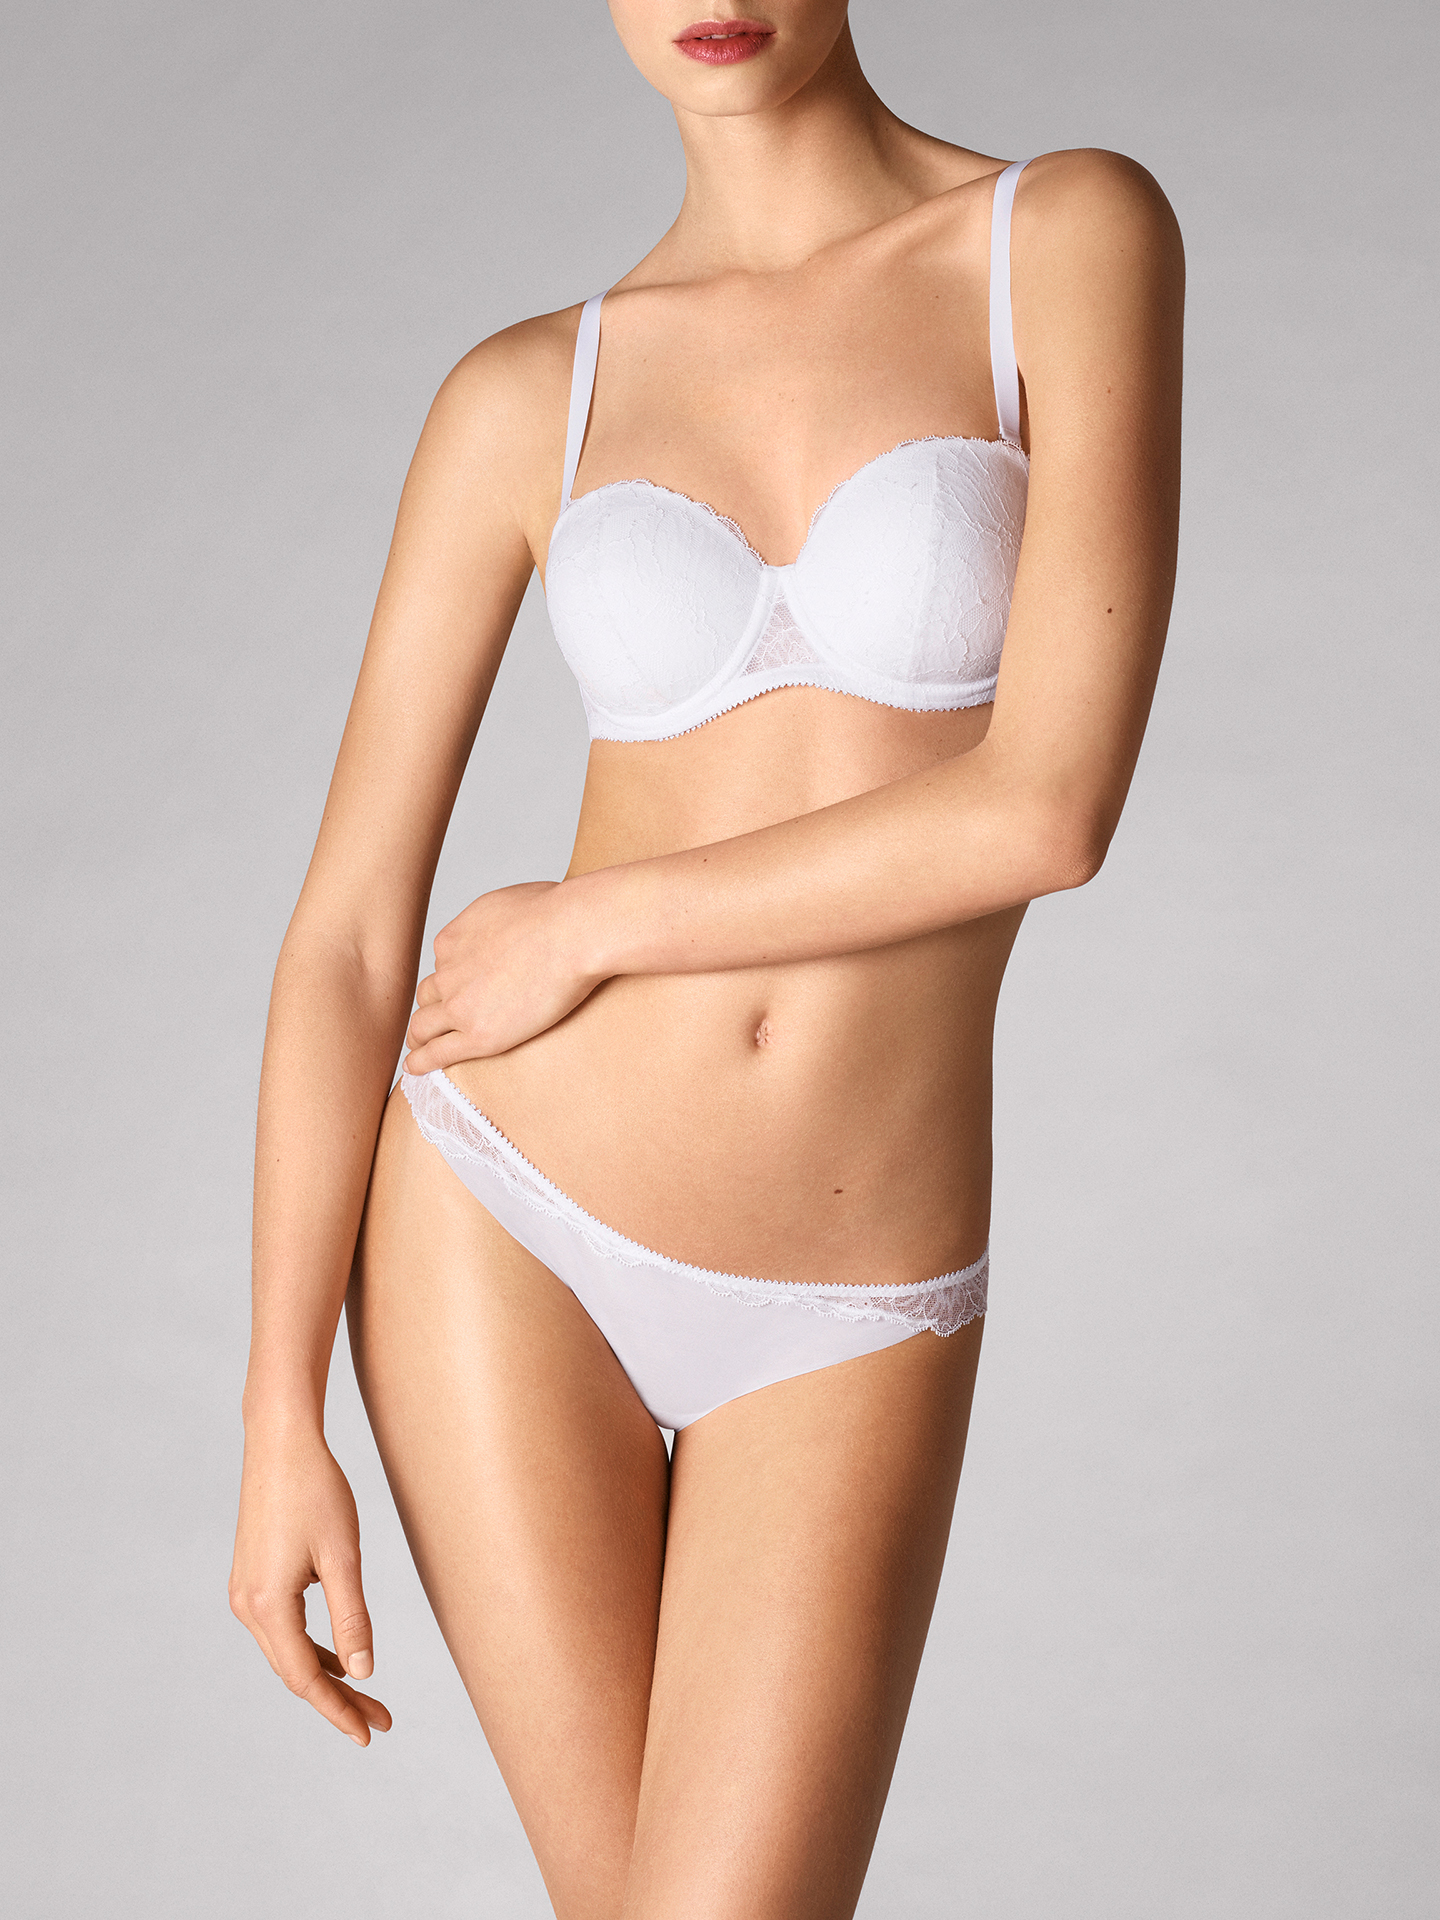 Wolford Apparel & Accessories > Clothing >  Stretch Lace Bandeau Bra - 1300 - 70C